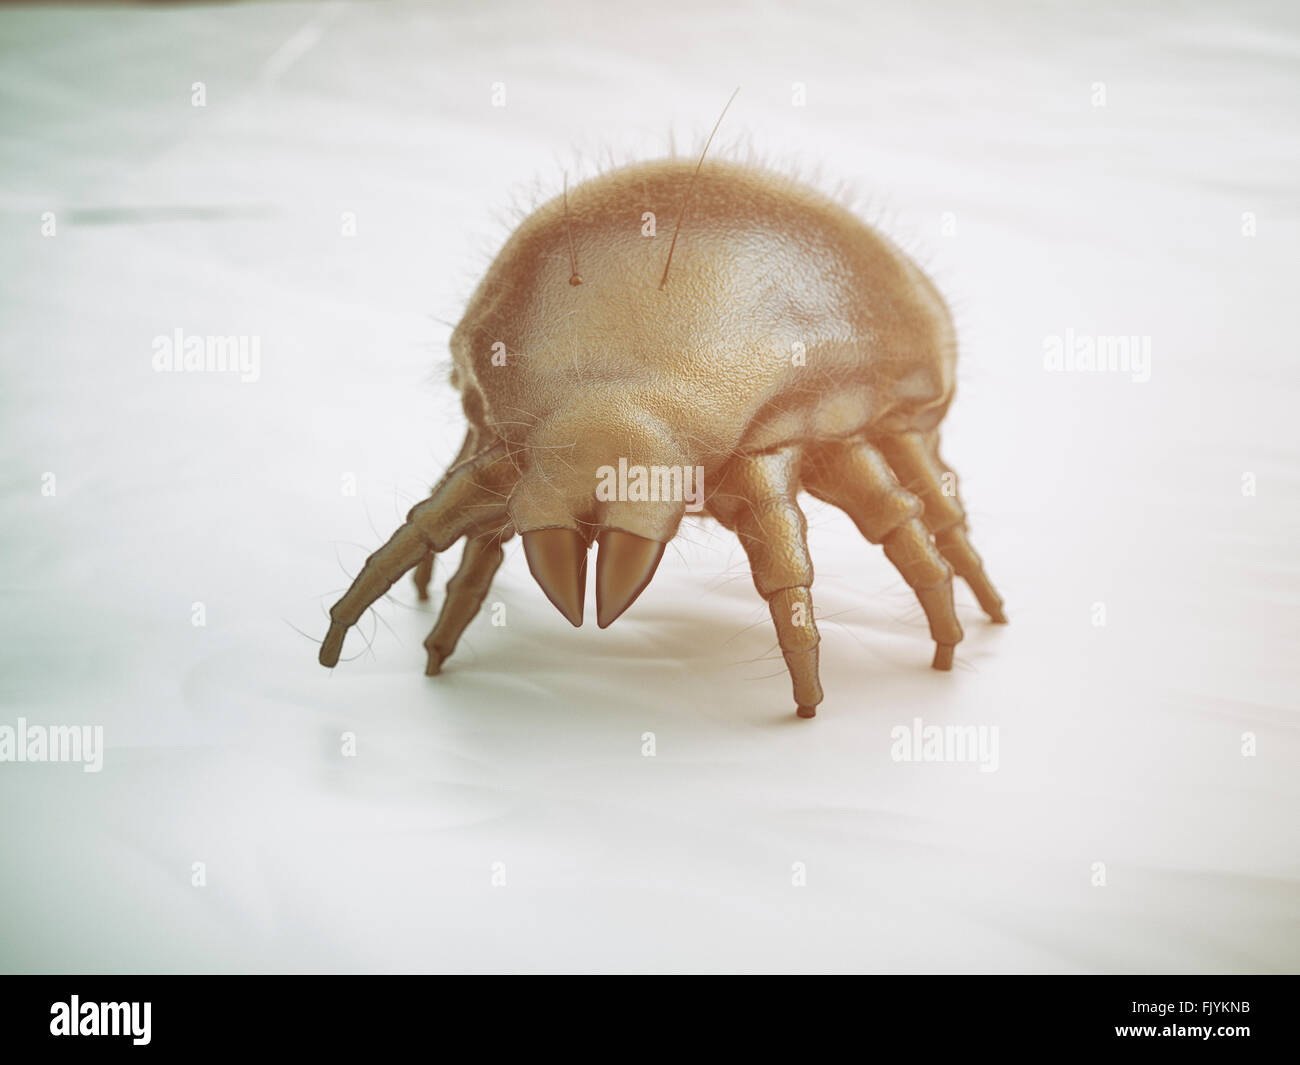 House dust mite Stock Photo